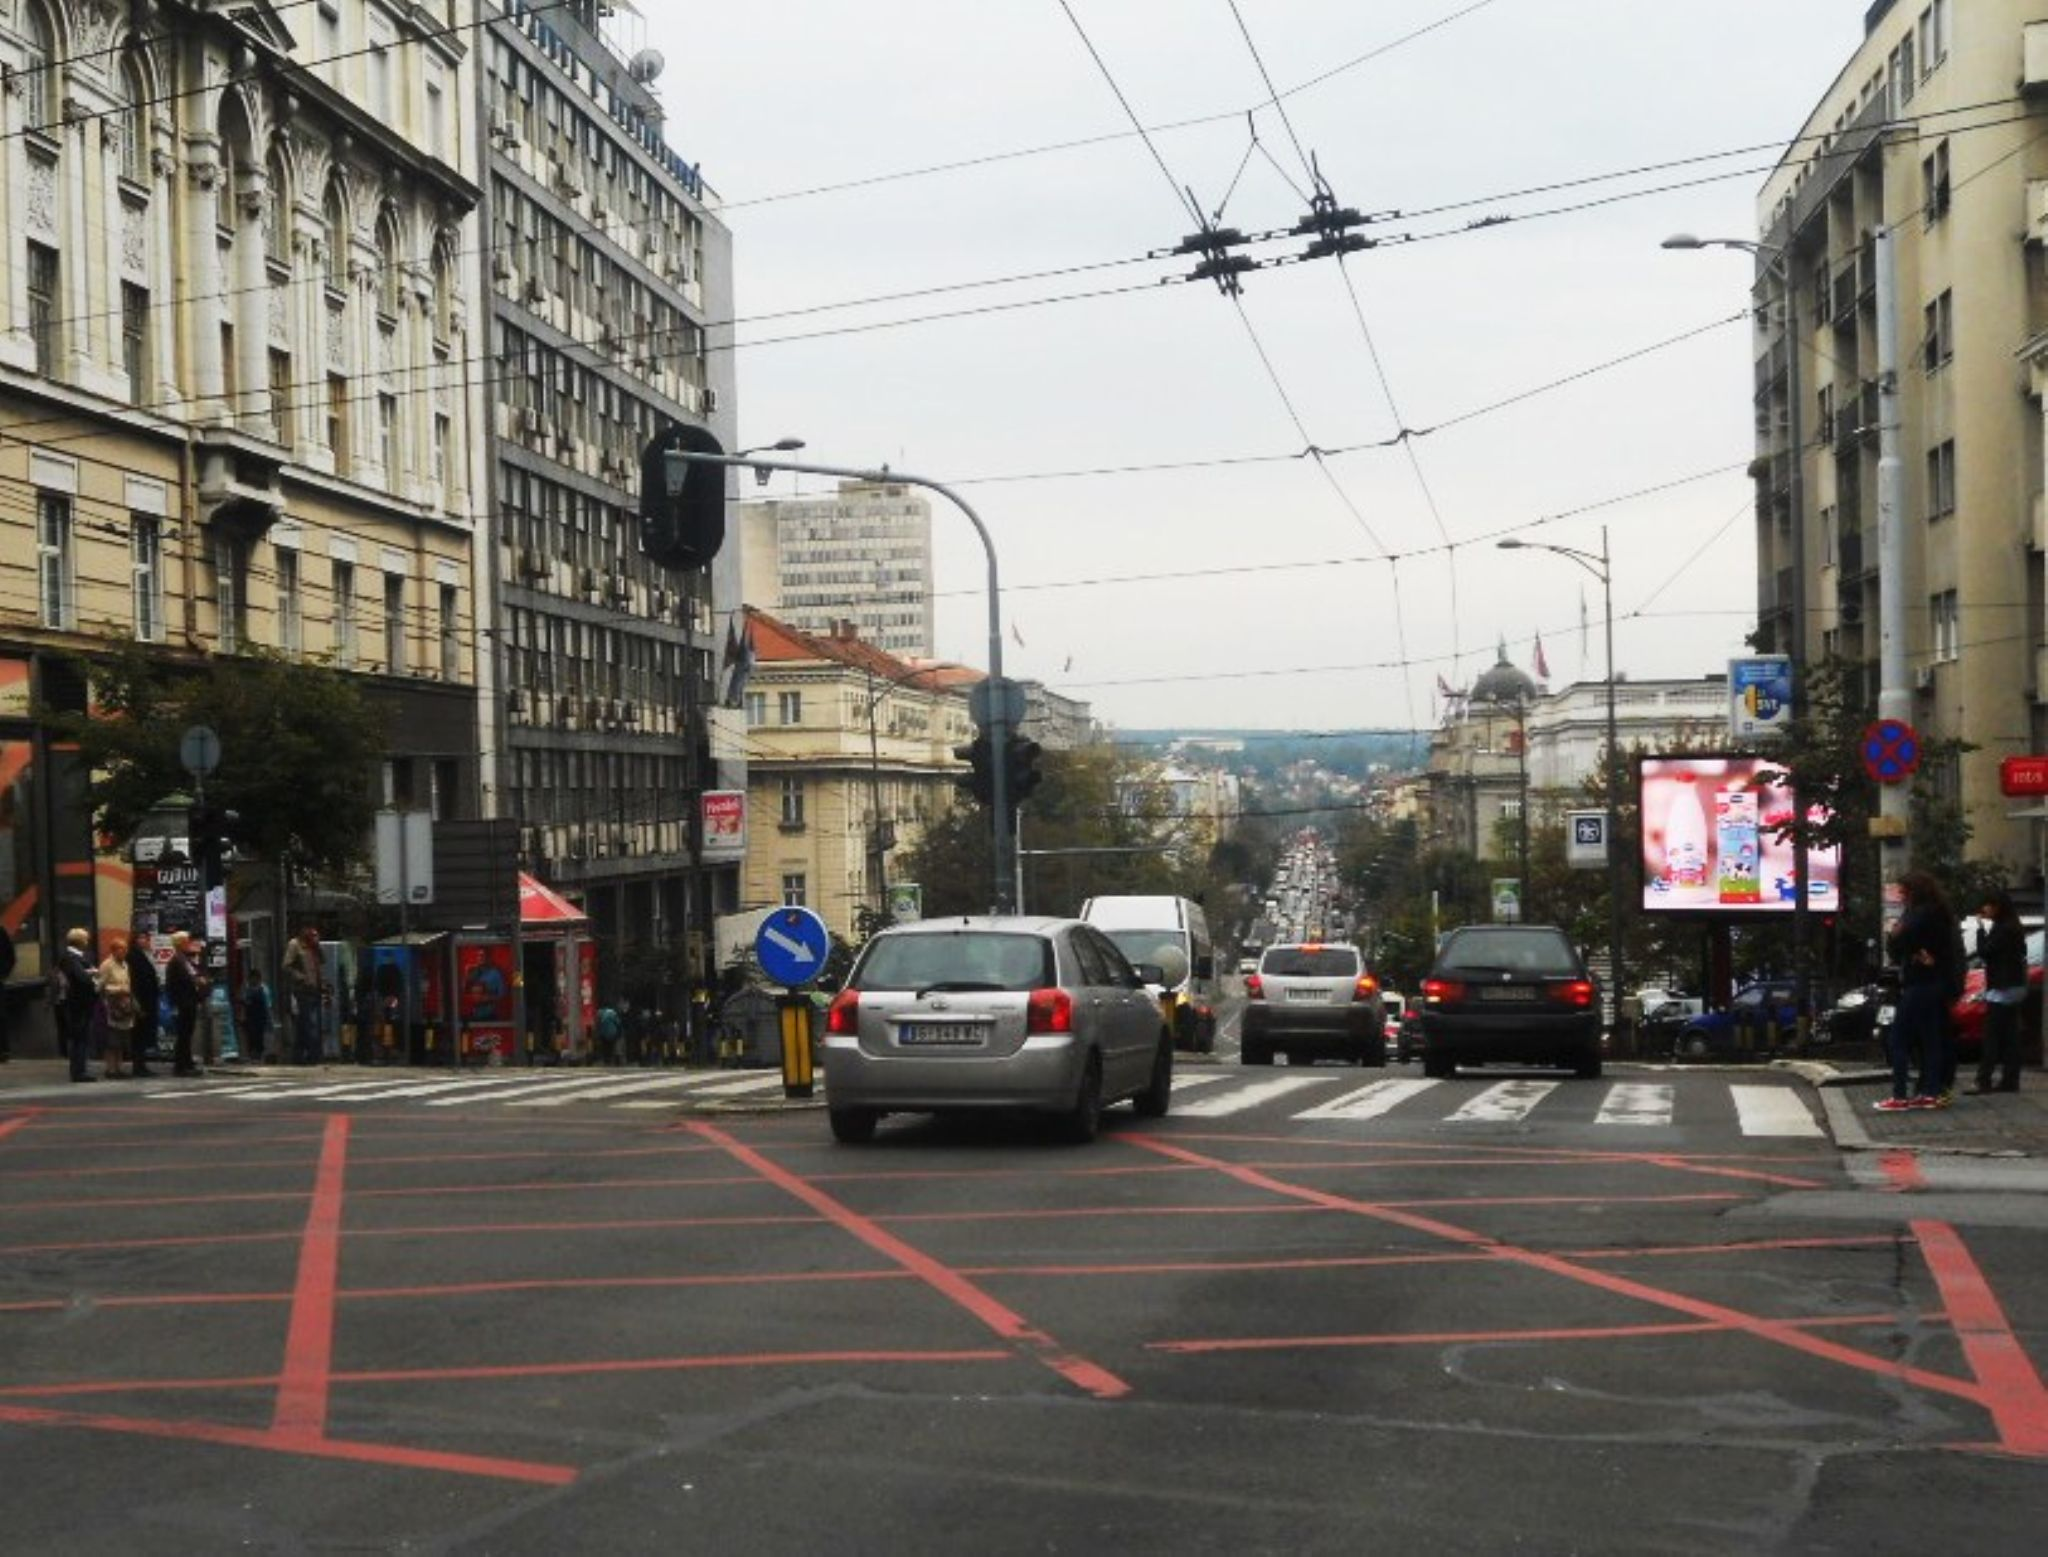 Center of Belgrade by SLADJANA VASIC